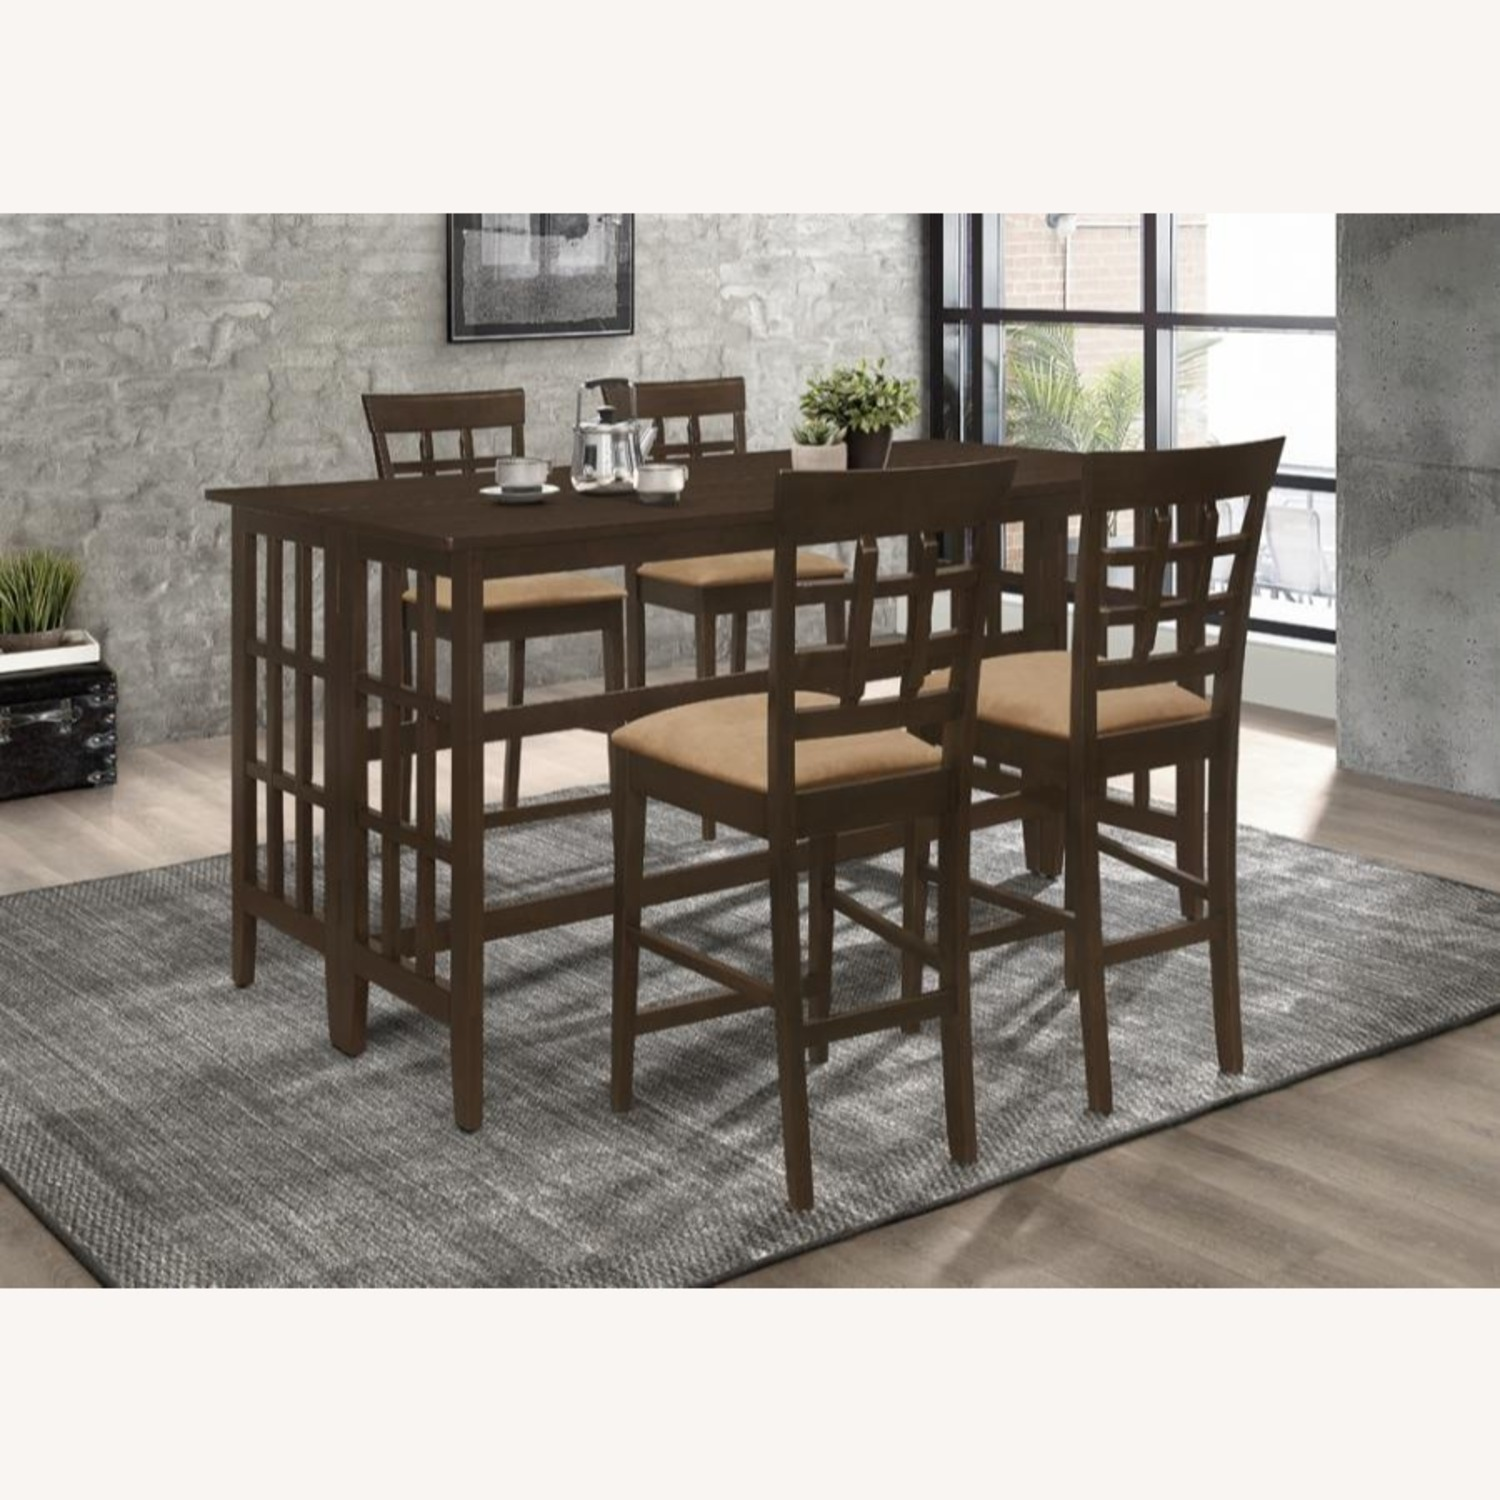 Counter Table In Brown W/ Table Top Drop Down - image-3